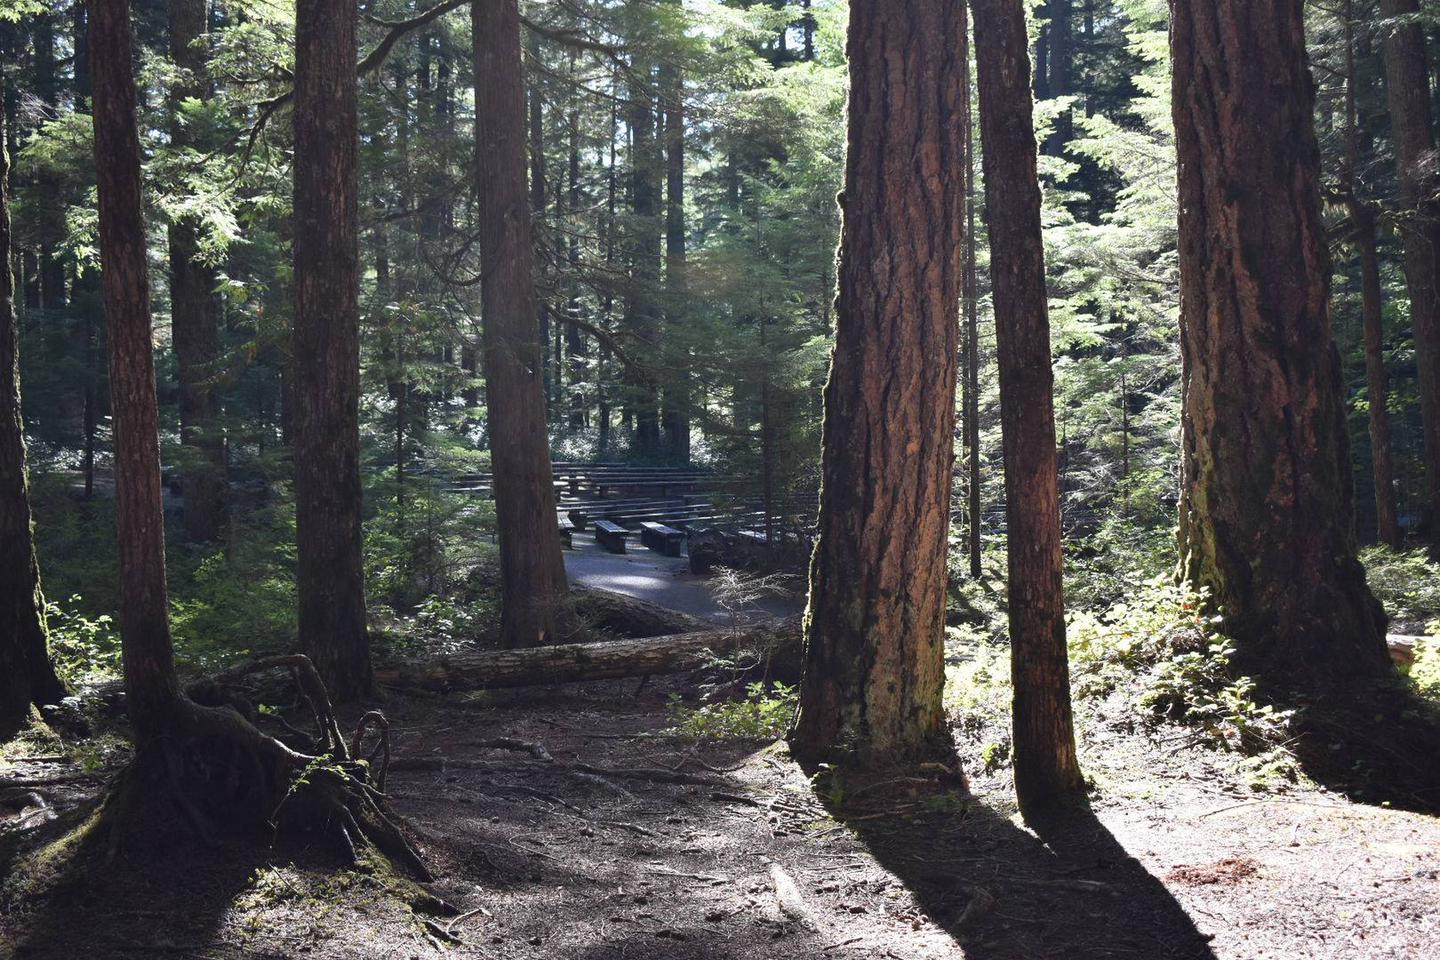 A short trail behind the campsite leads to the Ohanapecosh Campground Amphitheater.